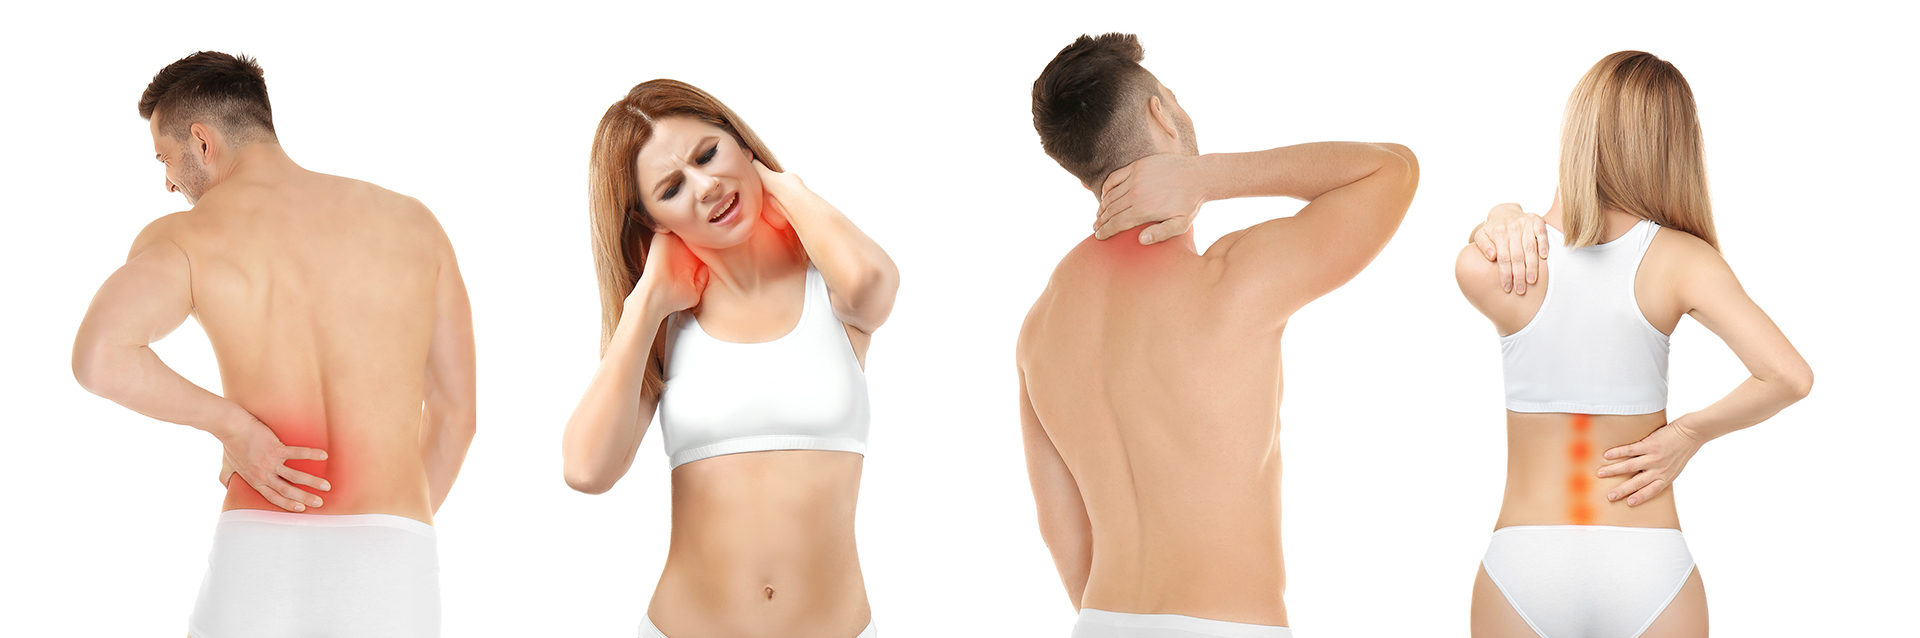 Man and woman in underwear having back pain or backache and neck pain or neckache